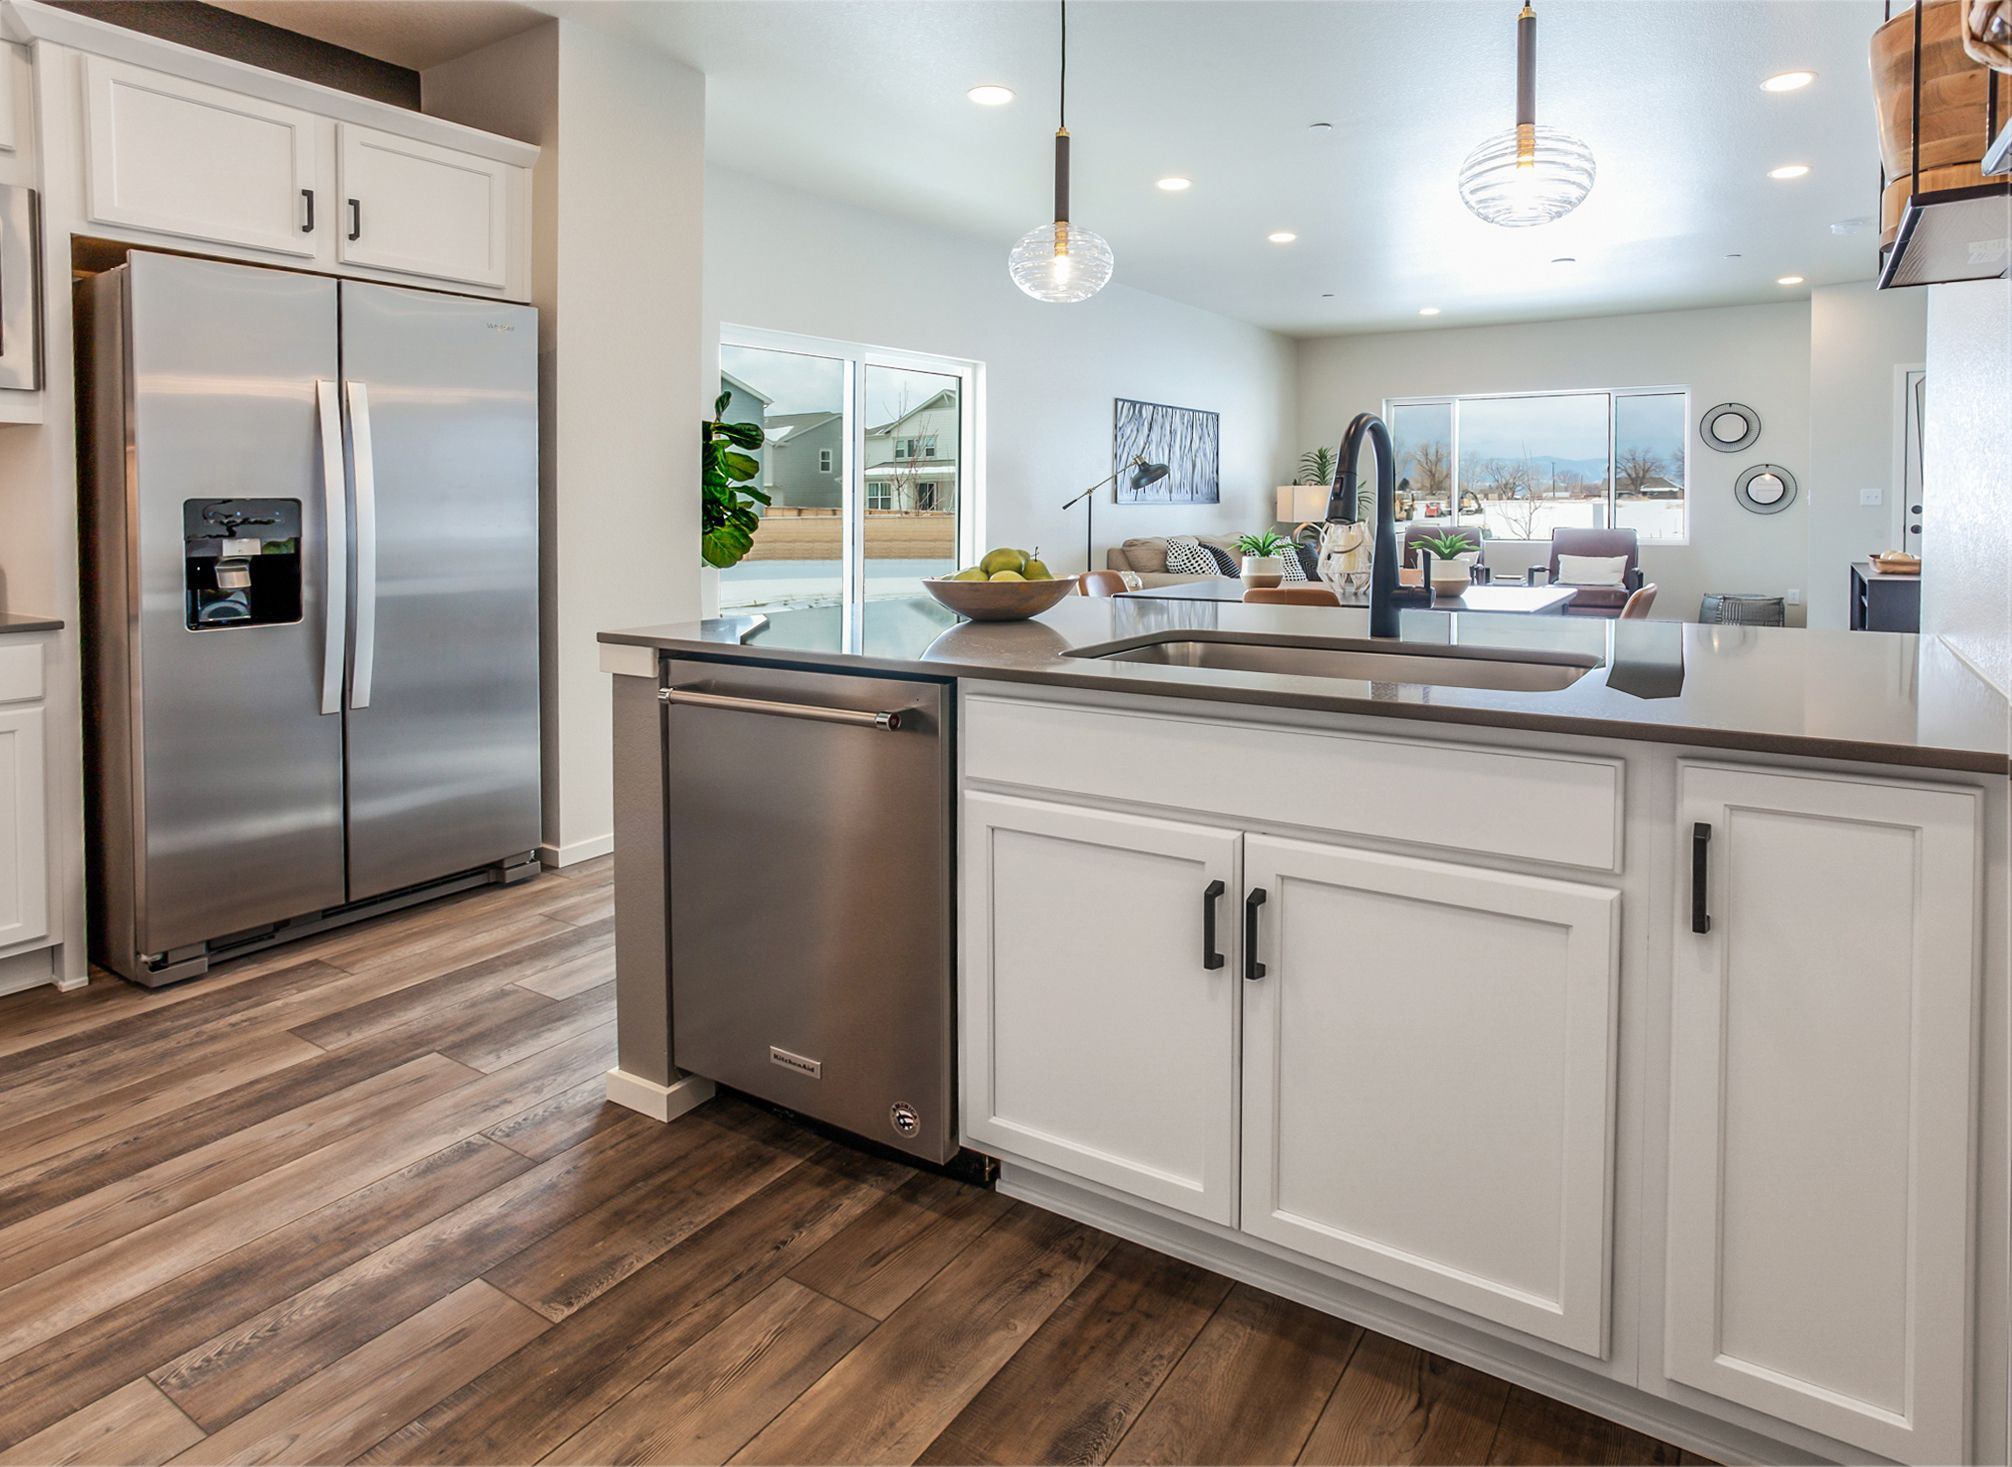 Kitchen featured in The Durango at Mosaic By Hartford Homes in Fort Collins-Loveland, CO